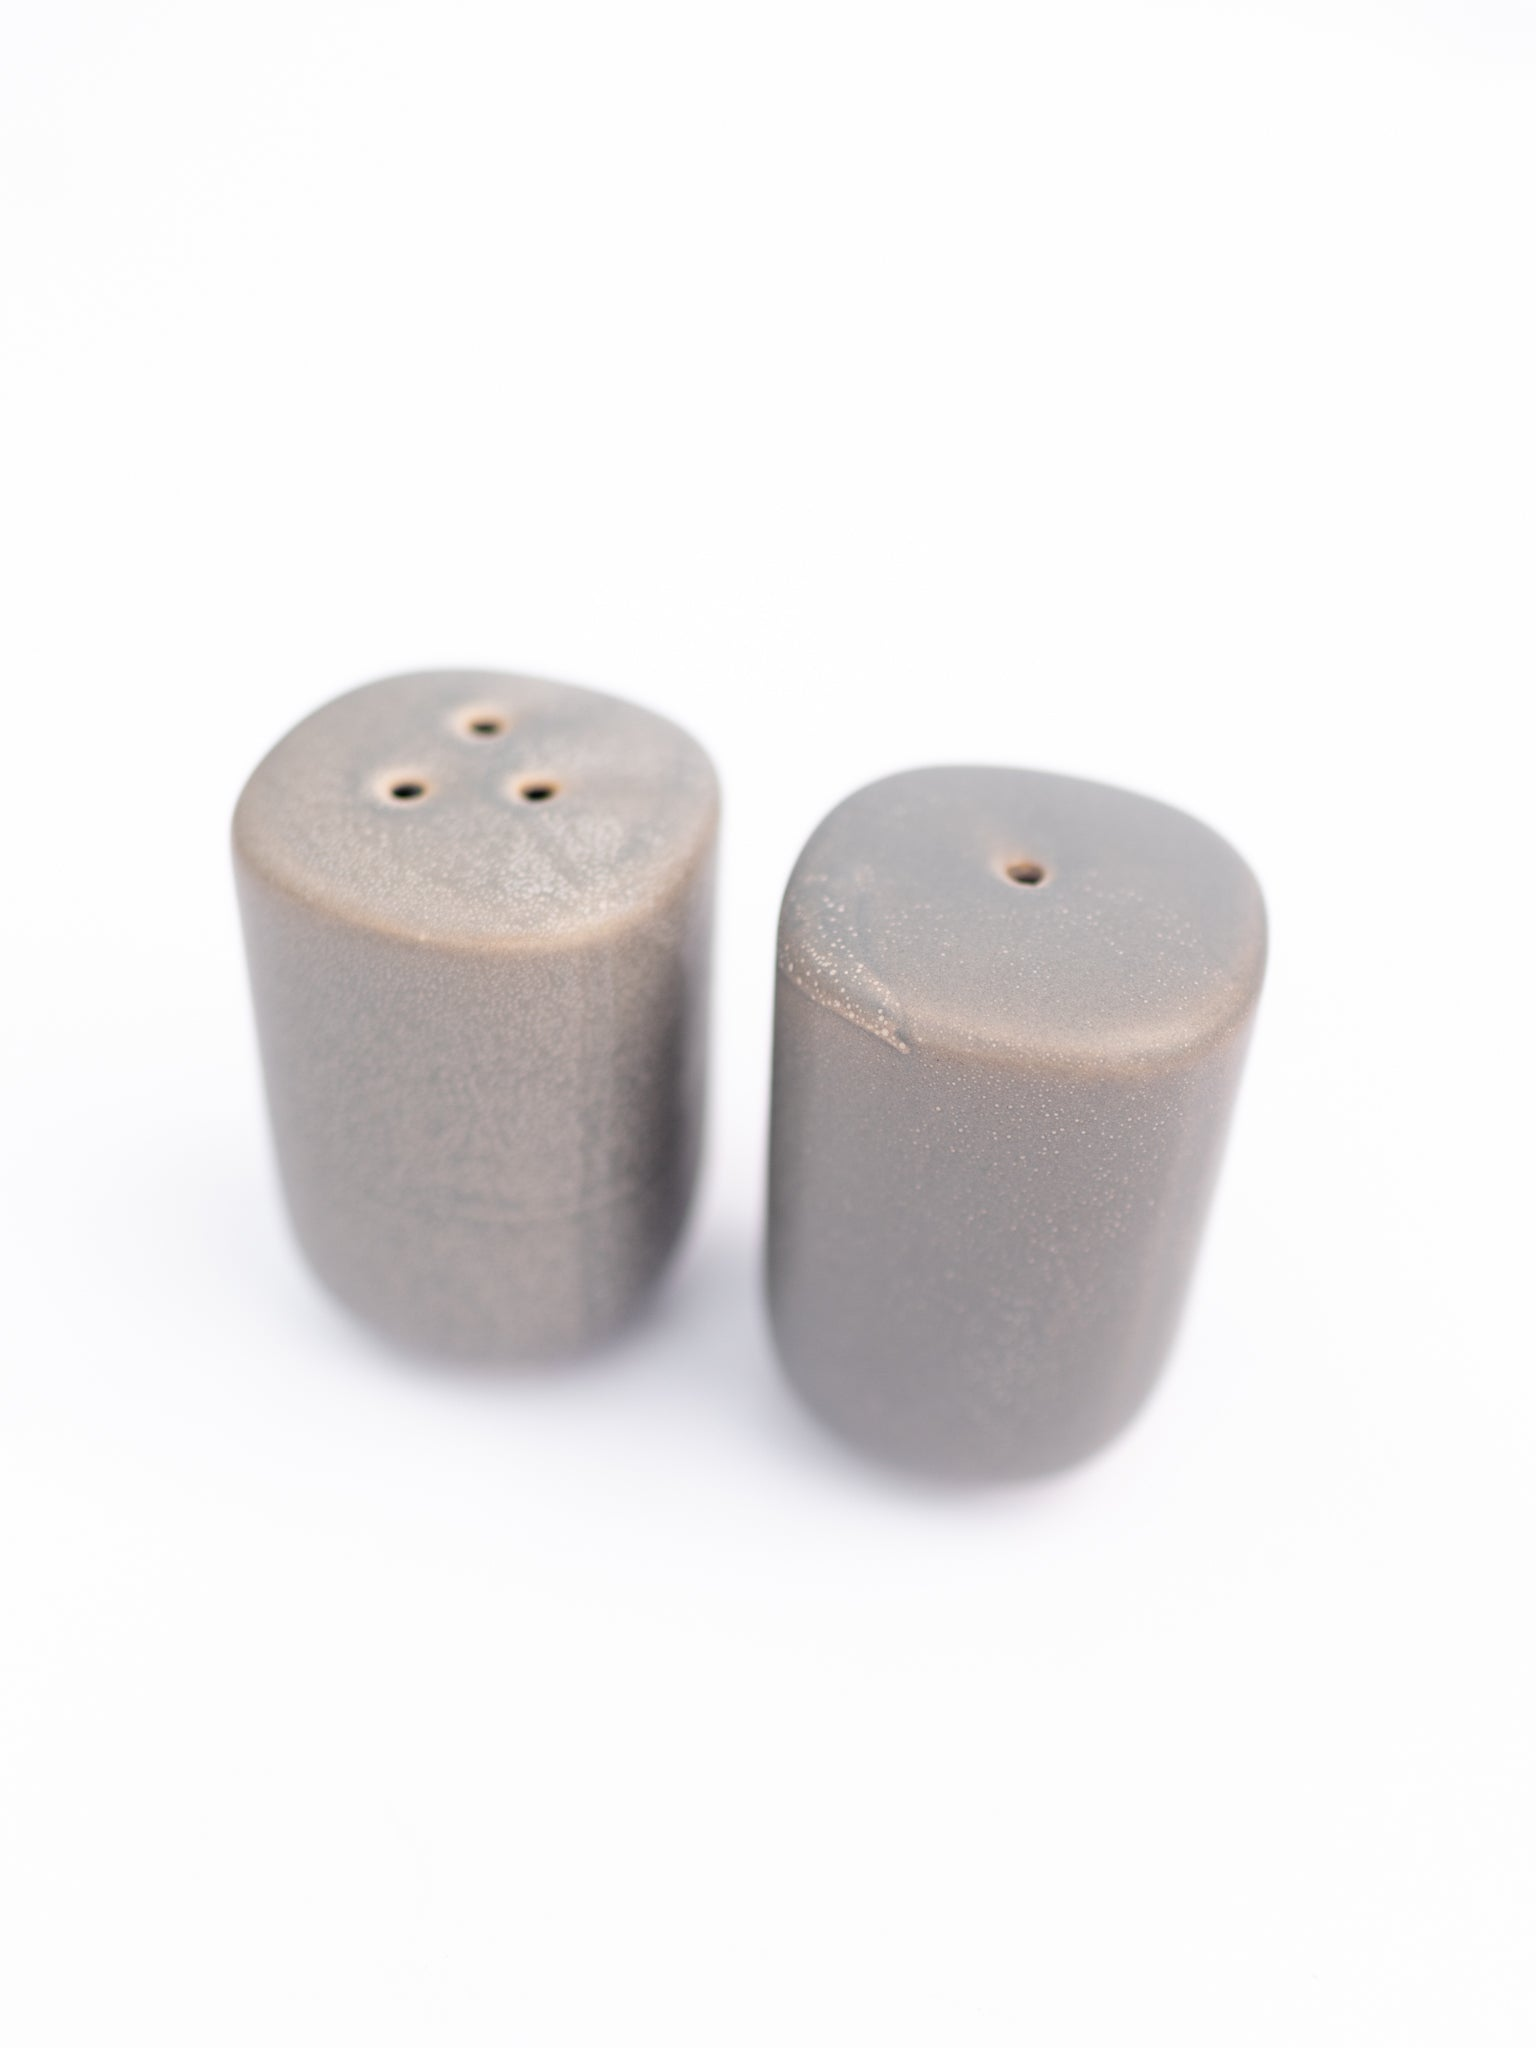 Matte Grey Stoneware Salt & Pepper Shakers